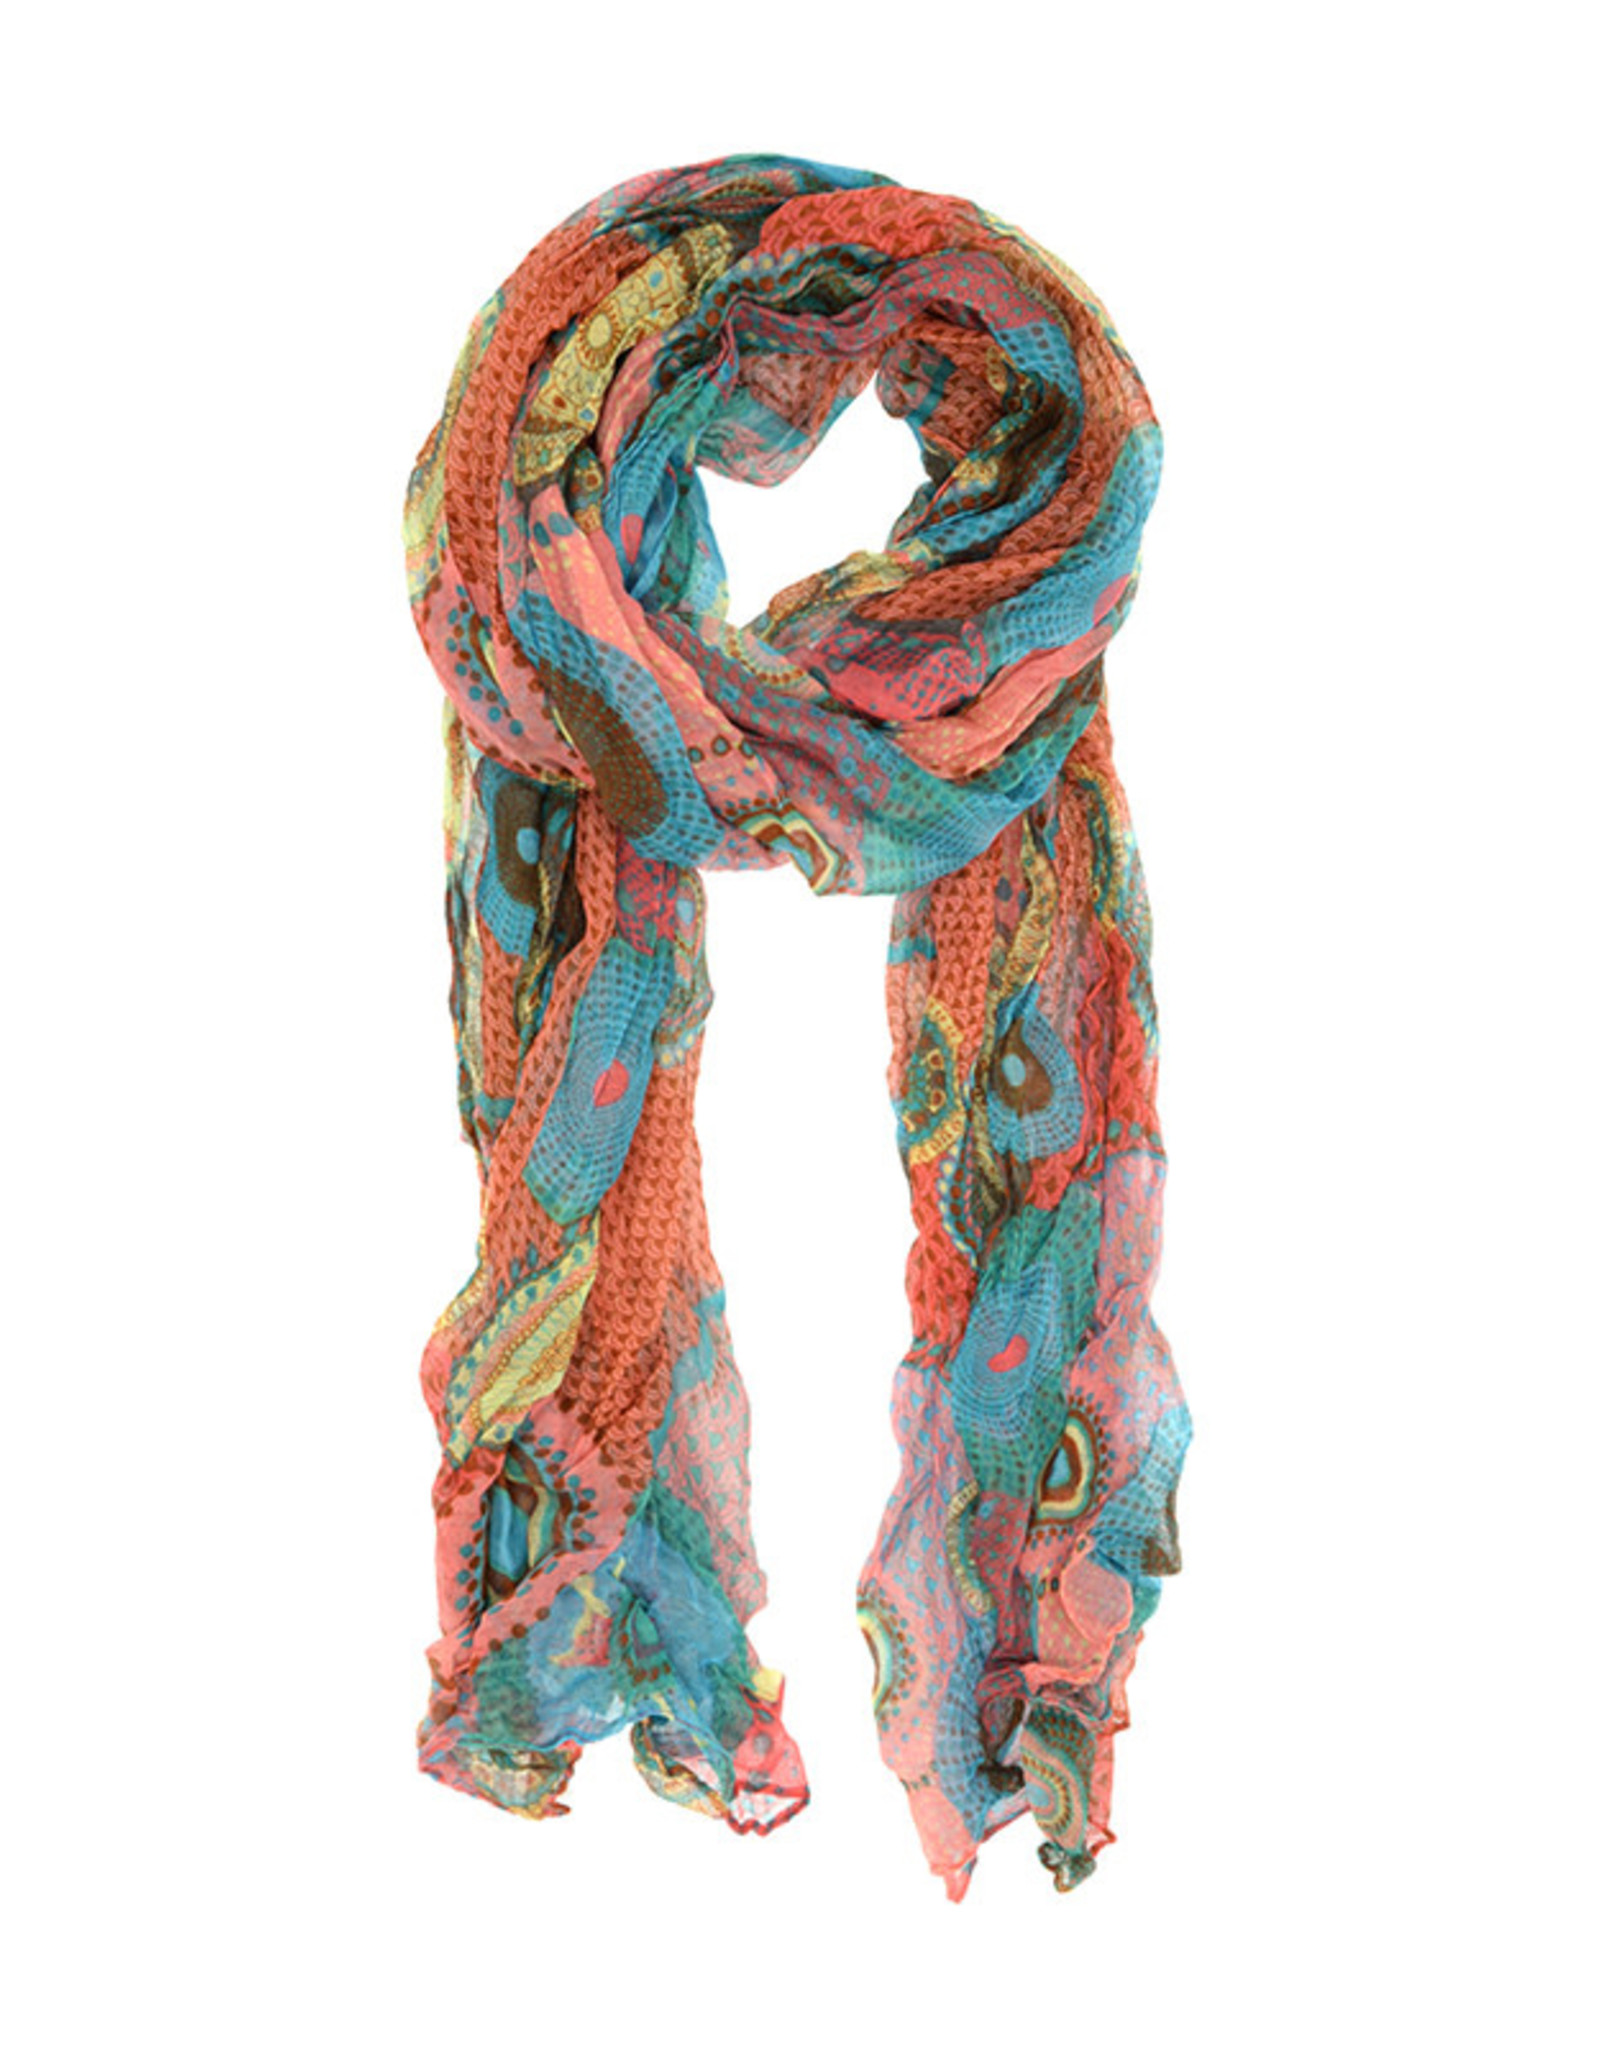 Joy Susan Accessories Dots and Daisy Scarf